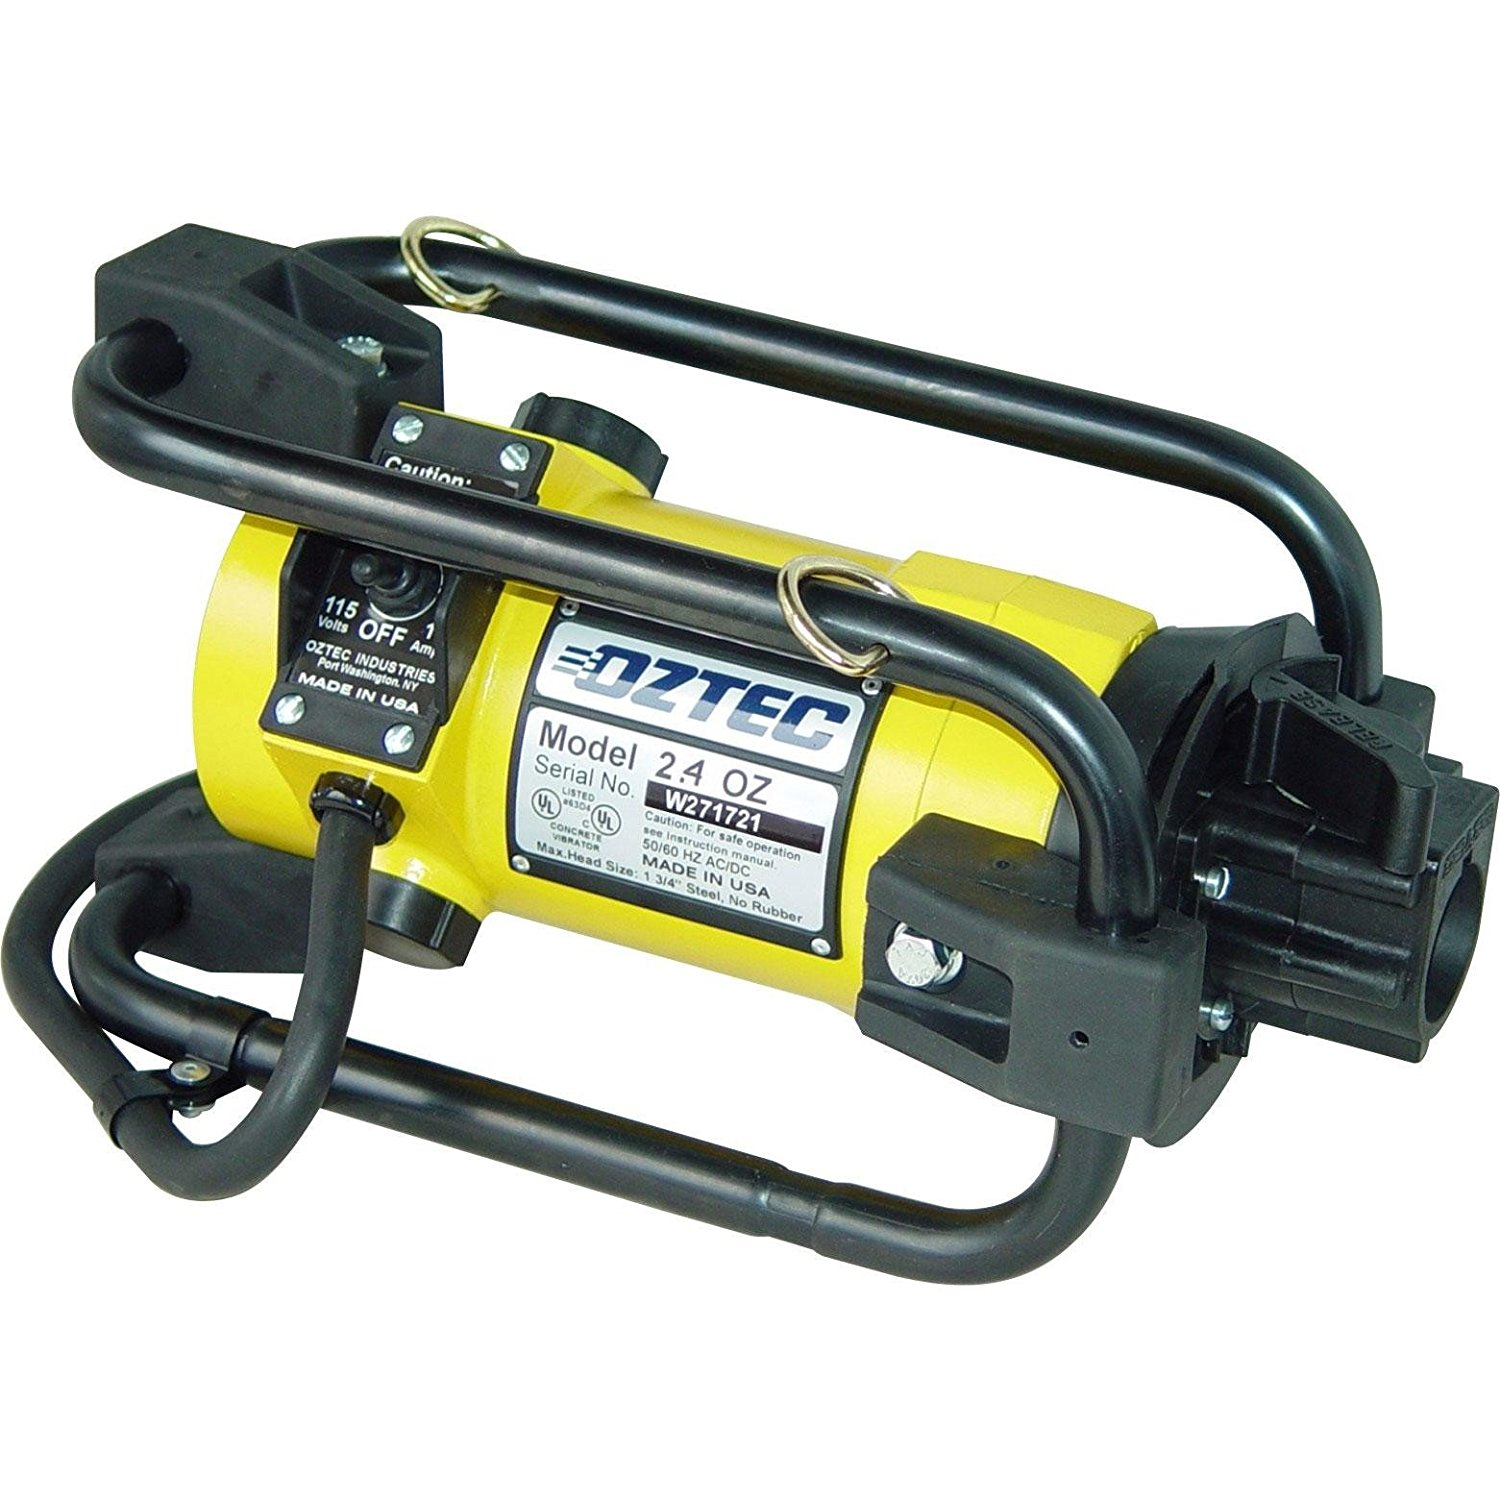 """OZTEC 2.4SV-FS07SS-H168SS Stow Type Concrete Vibrator, 1 Phase, AC/DC, 17 Amp Motor, 7' Flexible Shaft, 1-11/16"""" Head"""